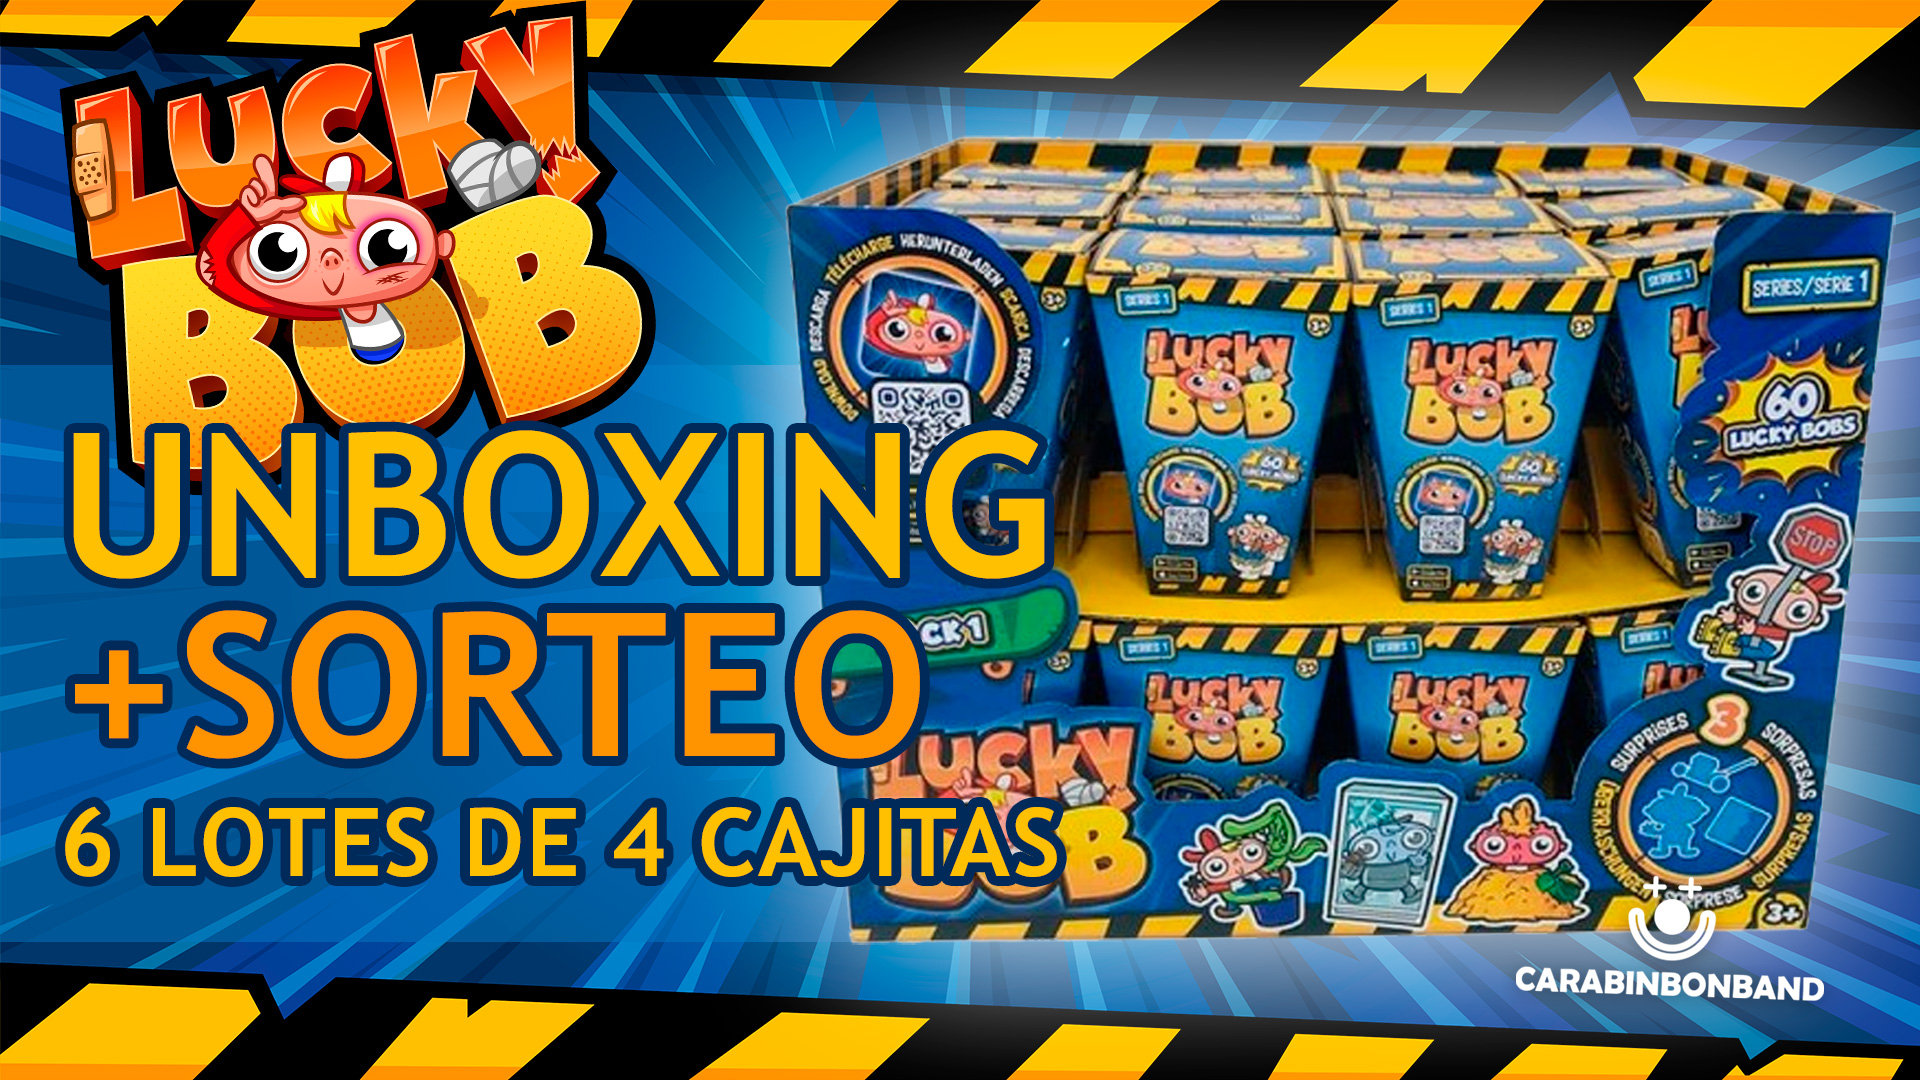 LUCKY BOB - UNBOXING AND RAFFLE PACK 24 INDIVIDUAL BOXES SERIES 1